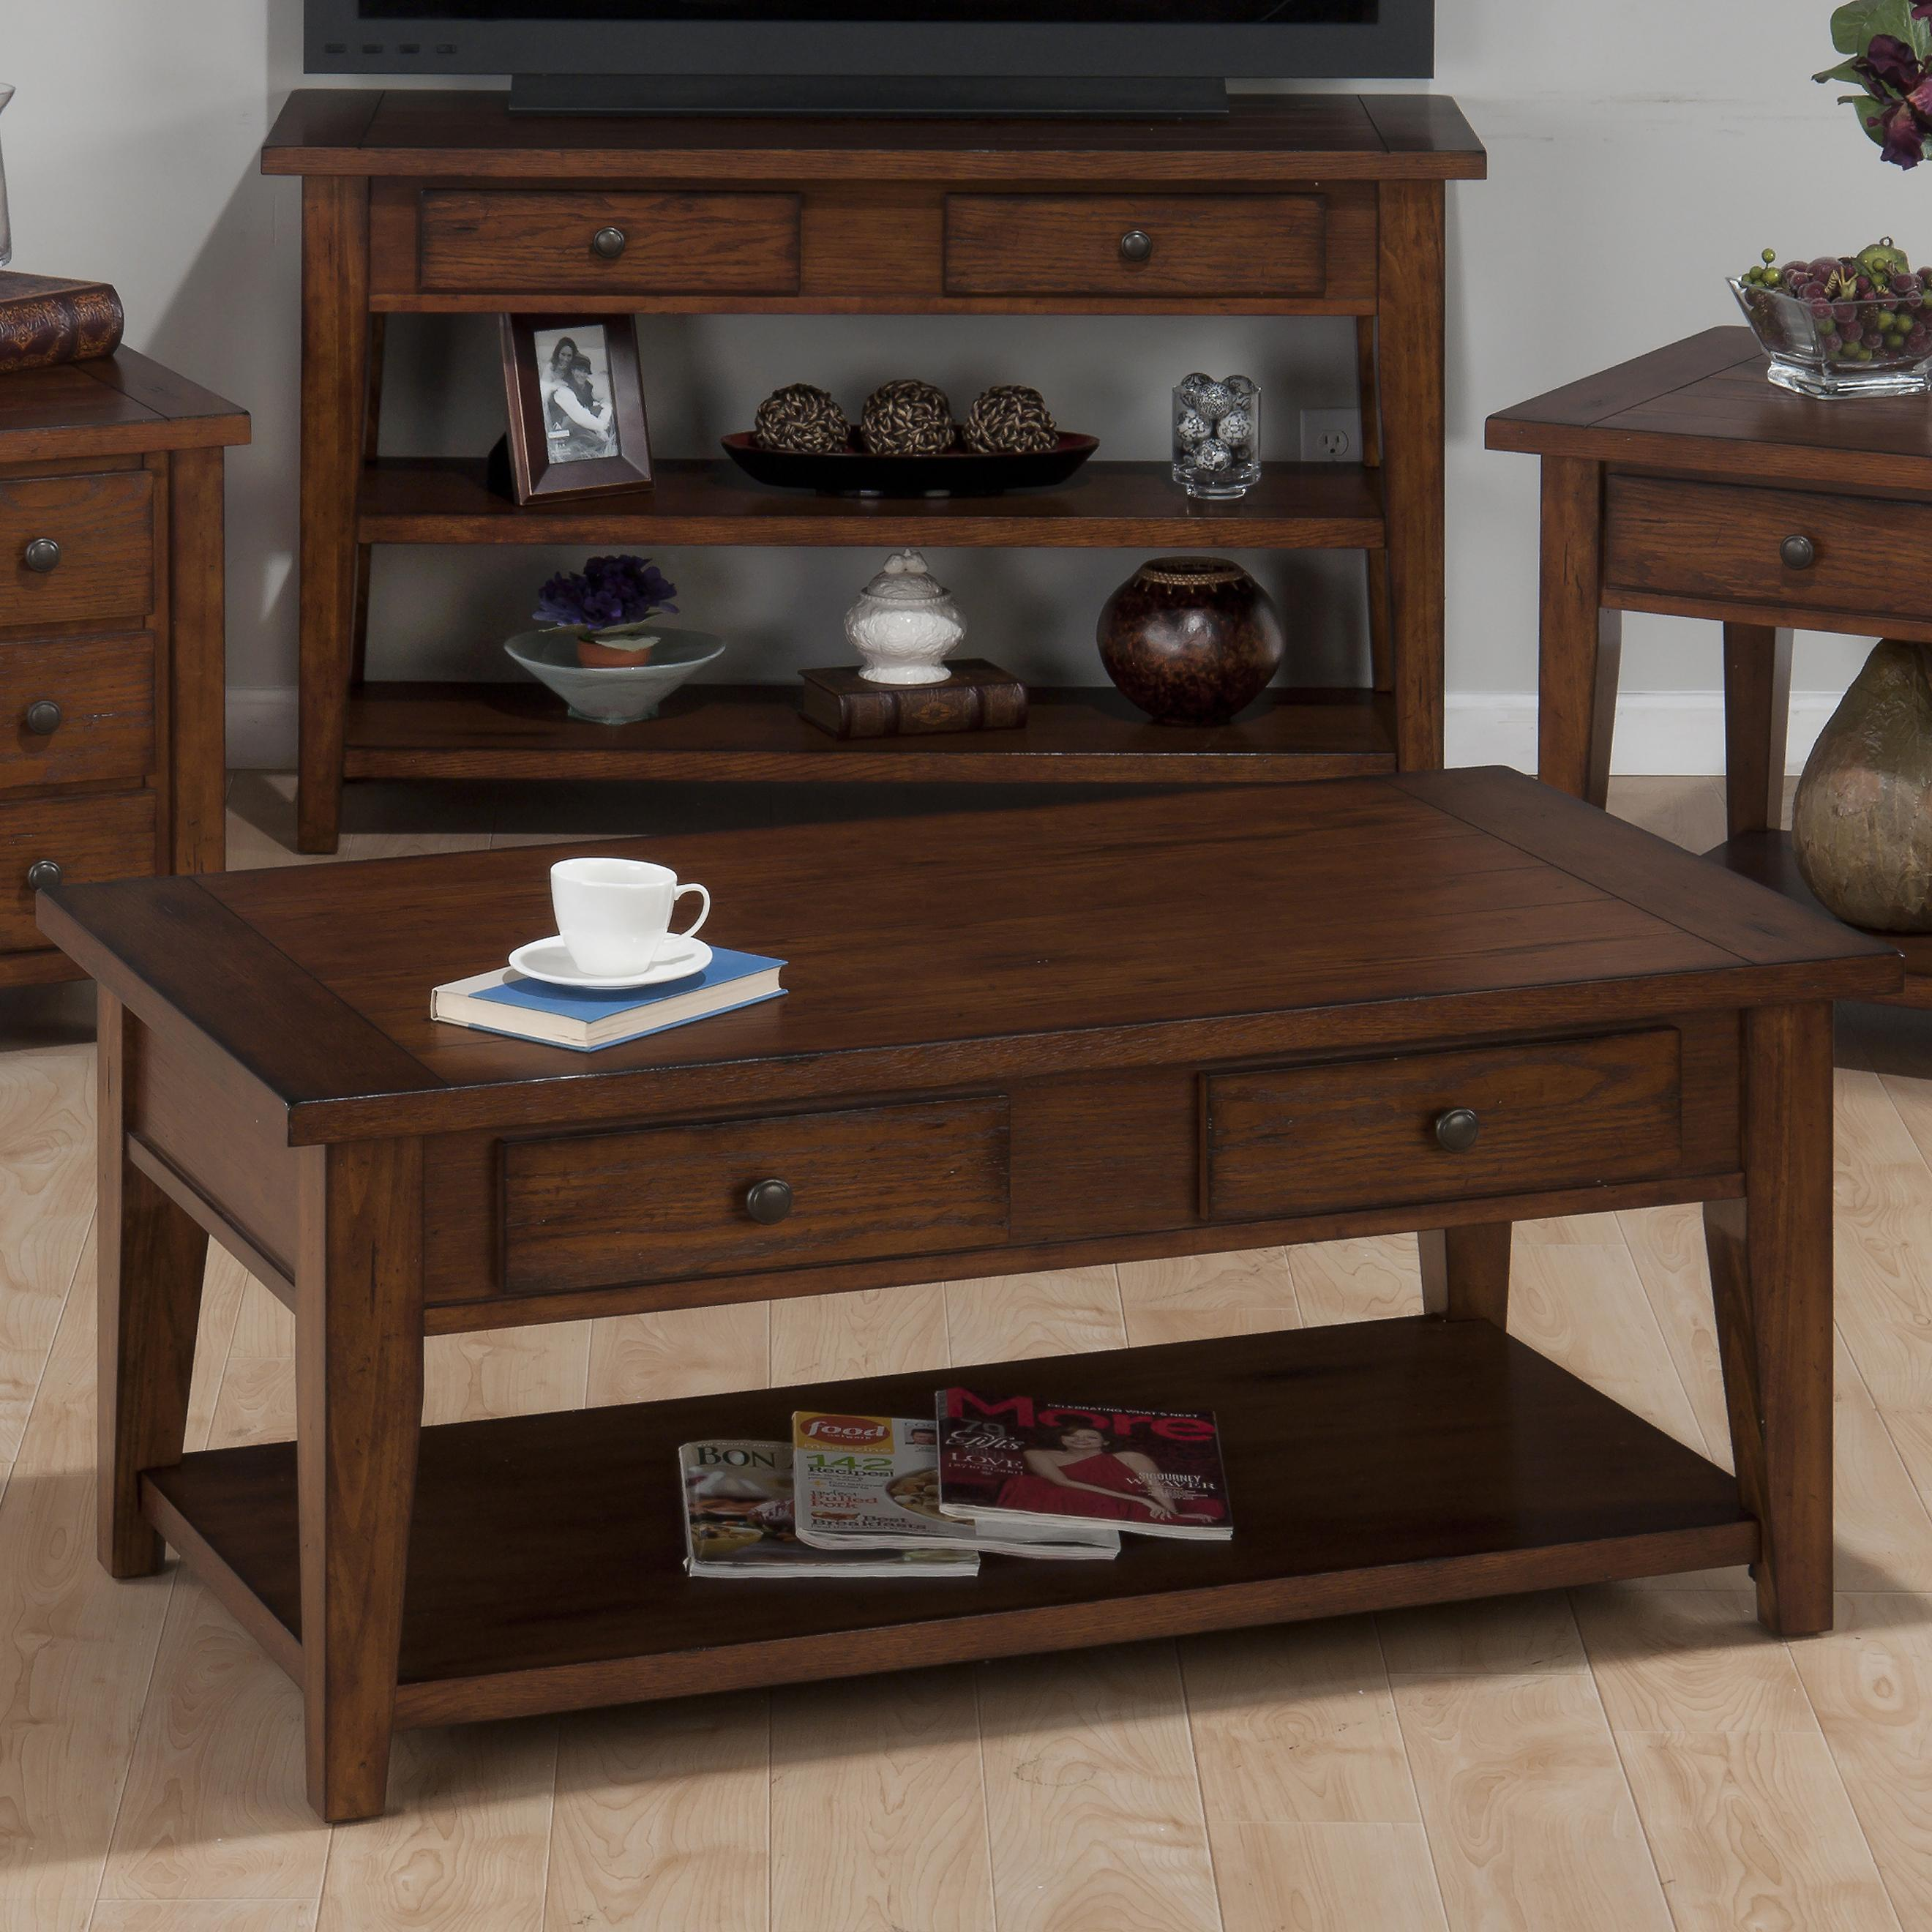 Clay County Oak Double Header Cocktail Table by Jofran at Prime Brothers Furniture